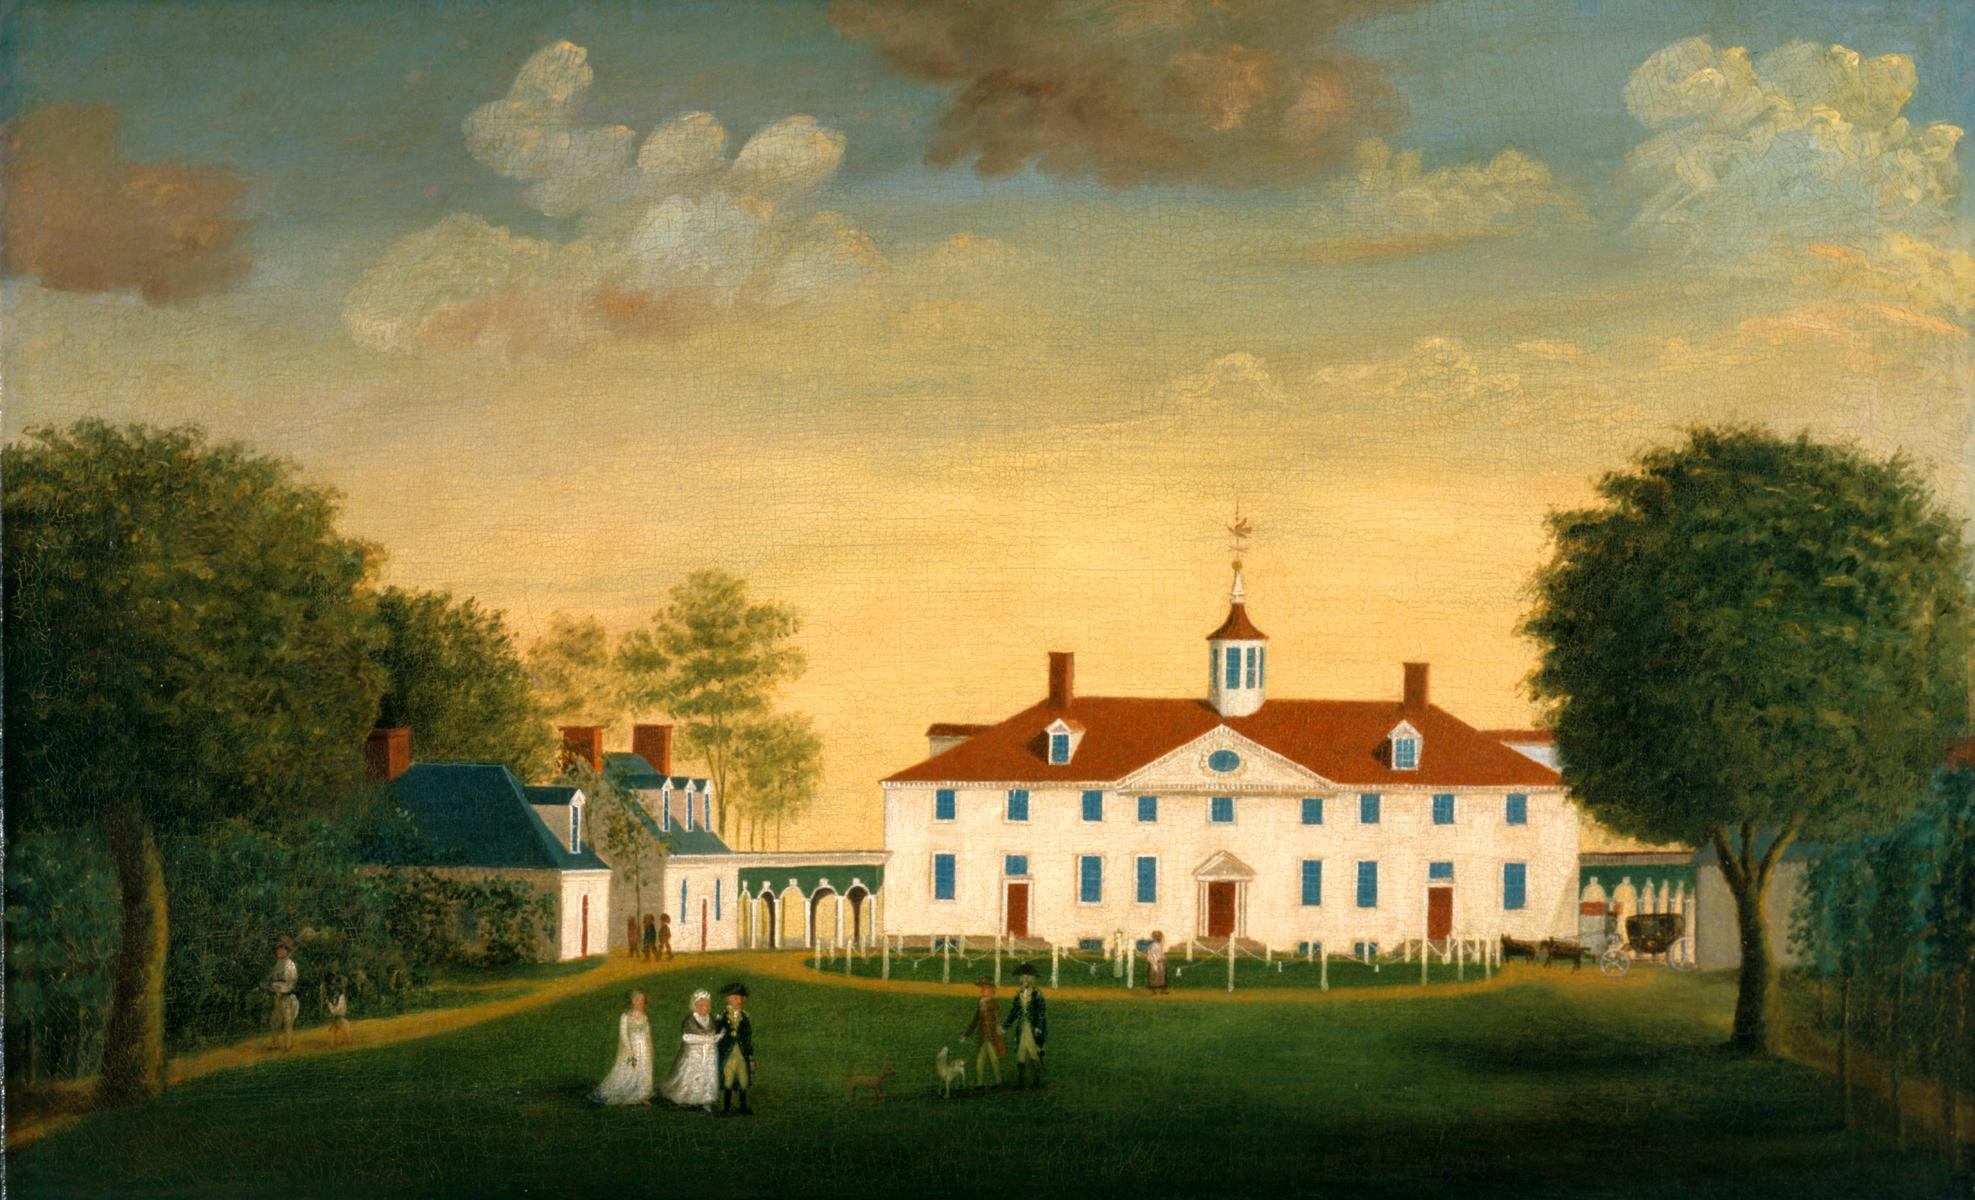 Washington was looking forward to a more private life as a farmer at Mount Vernon after the war (Edward Savage)